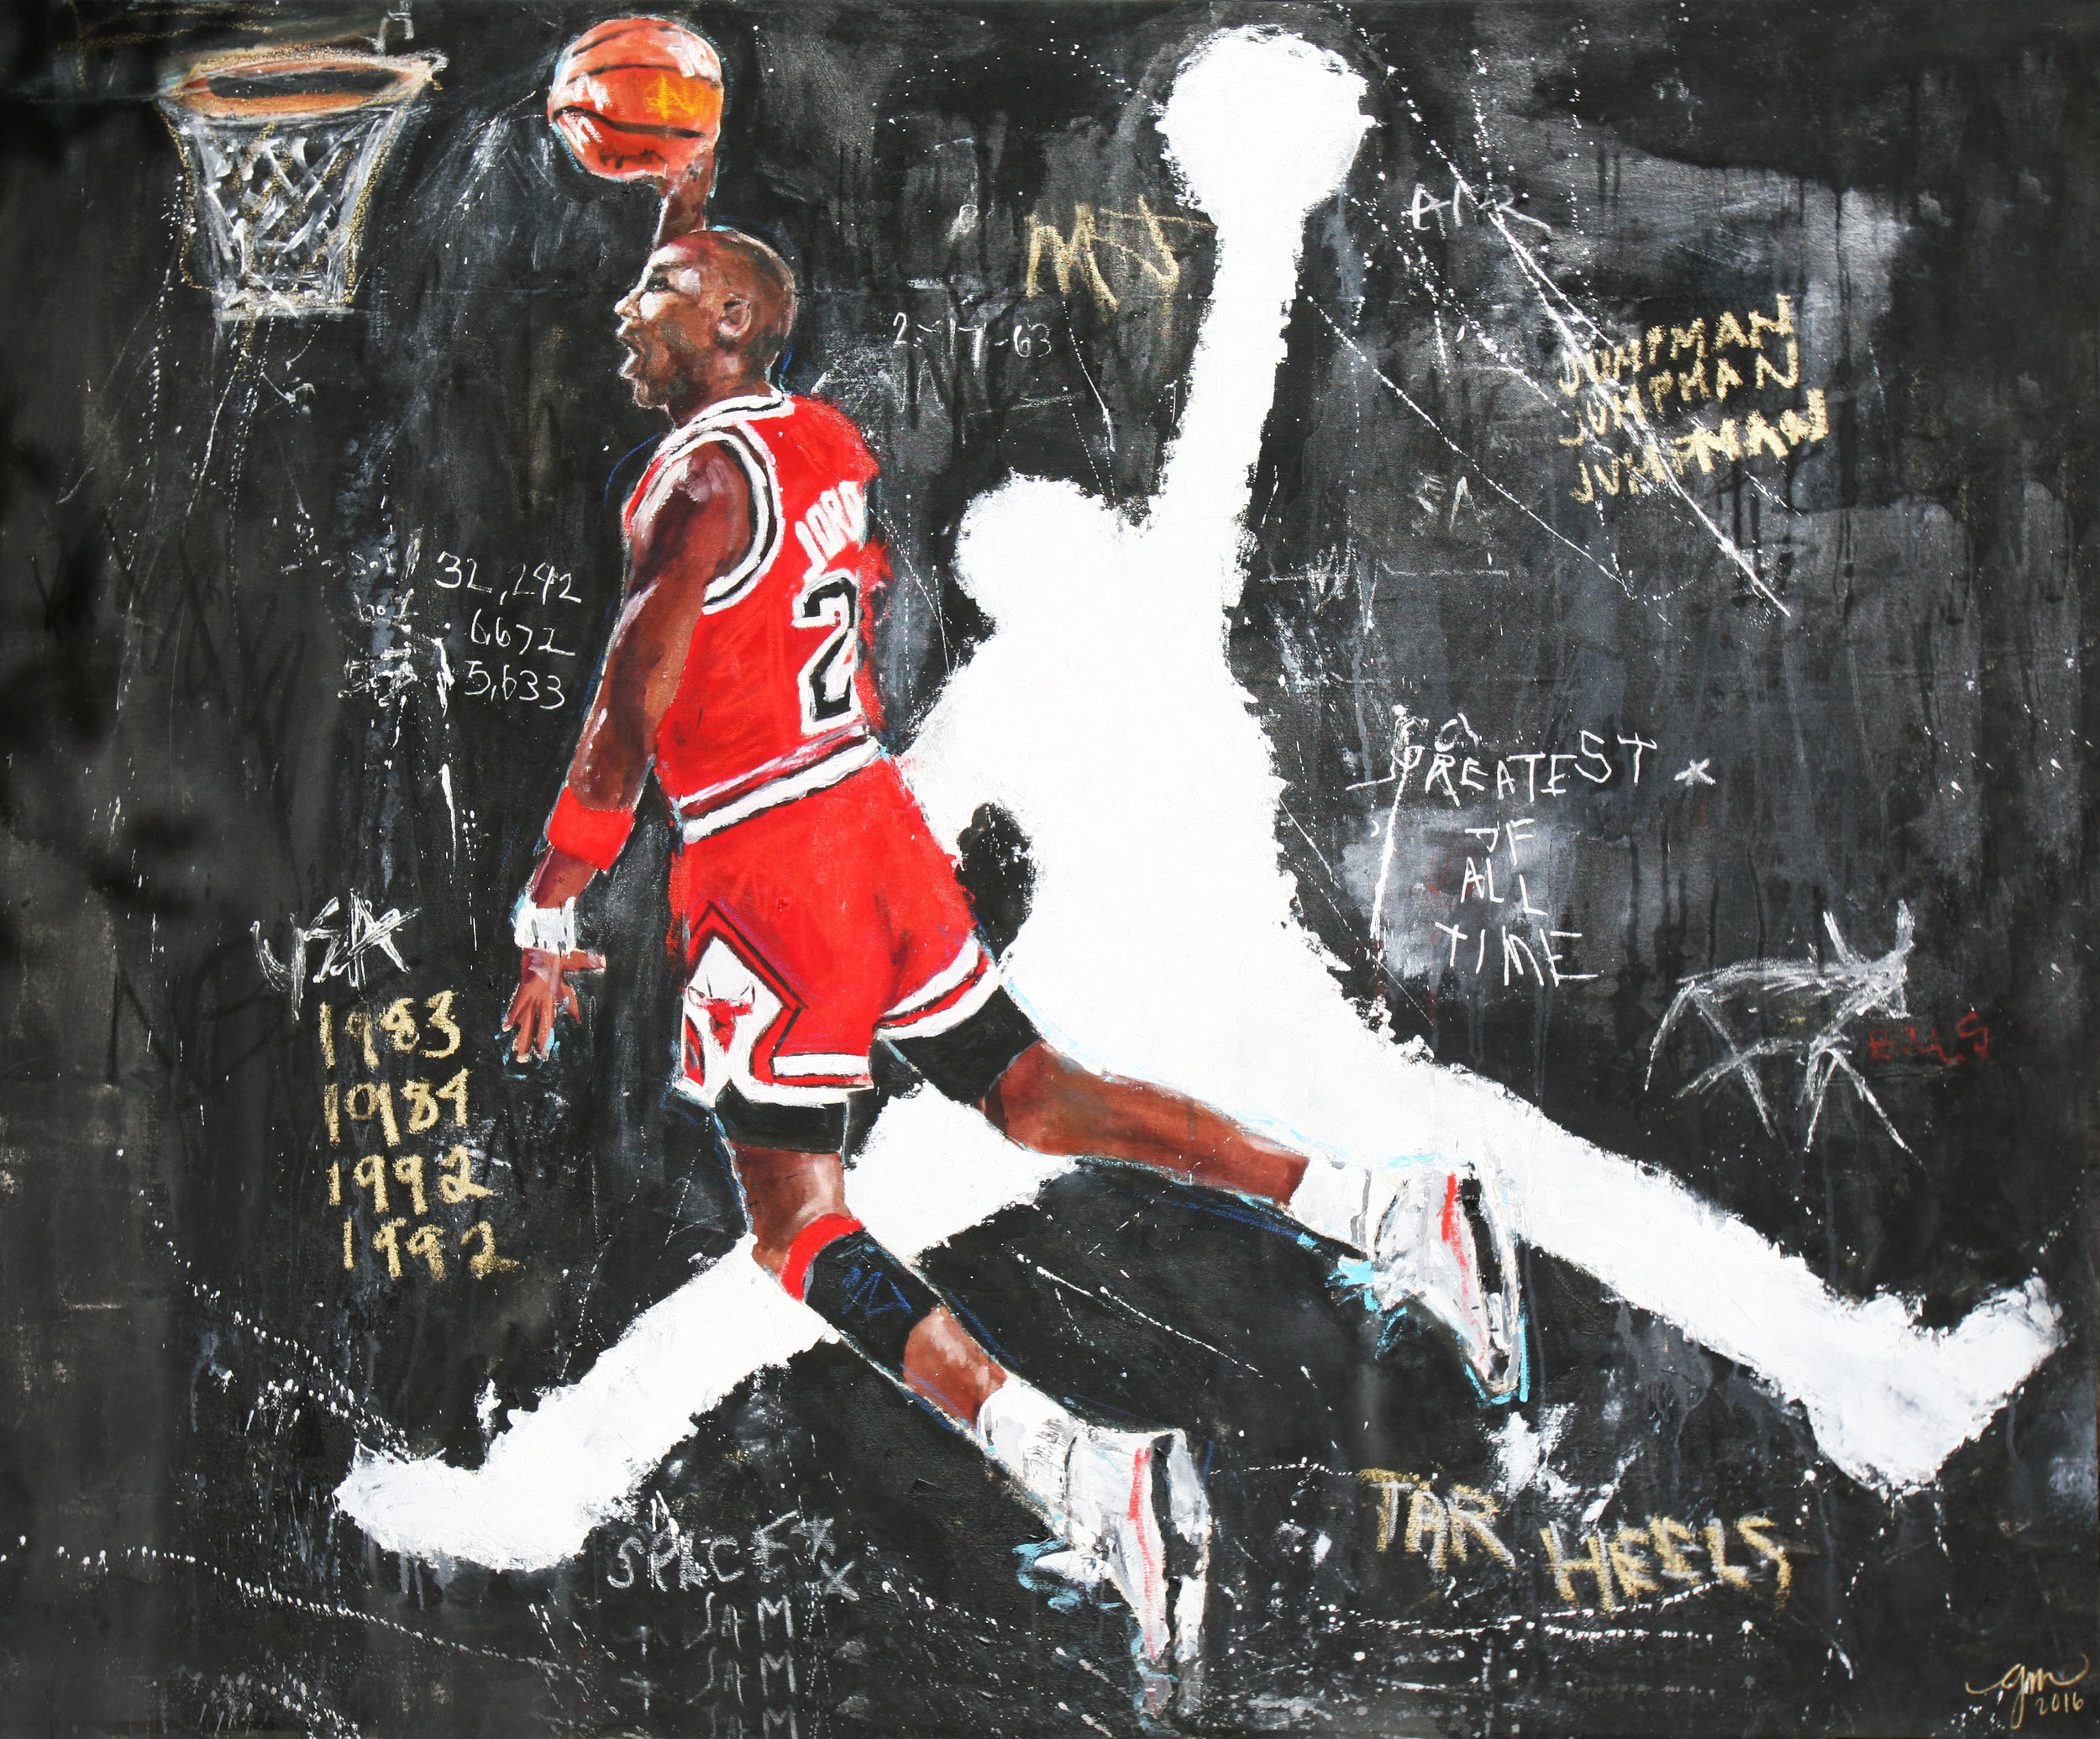 HIS AIRNESS , 2016 (GREATEST OF ALL TIME series)  48 x 60 inches  MIXED MEDIA – OIL/ACRYLIC ON STRETCHED LINEN CANVAS  *pricing available upon request